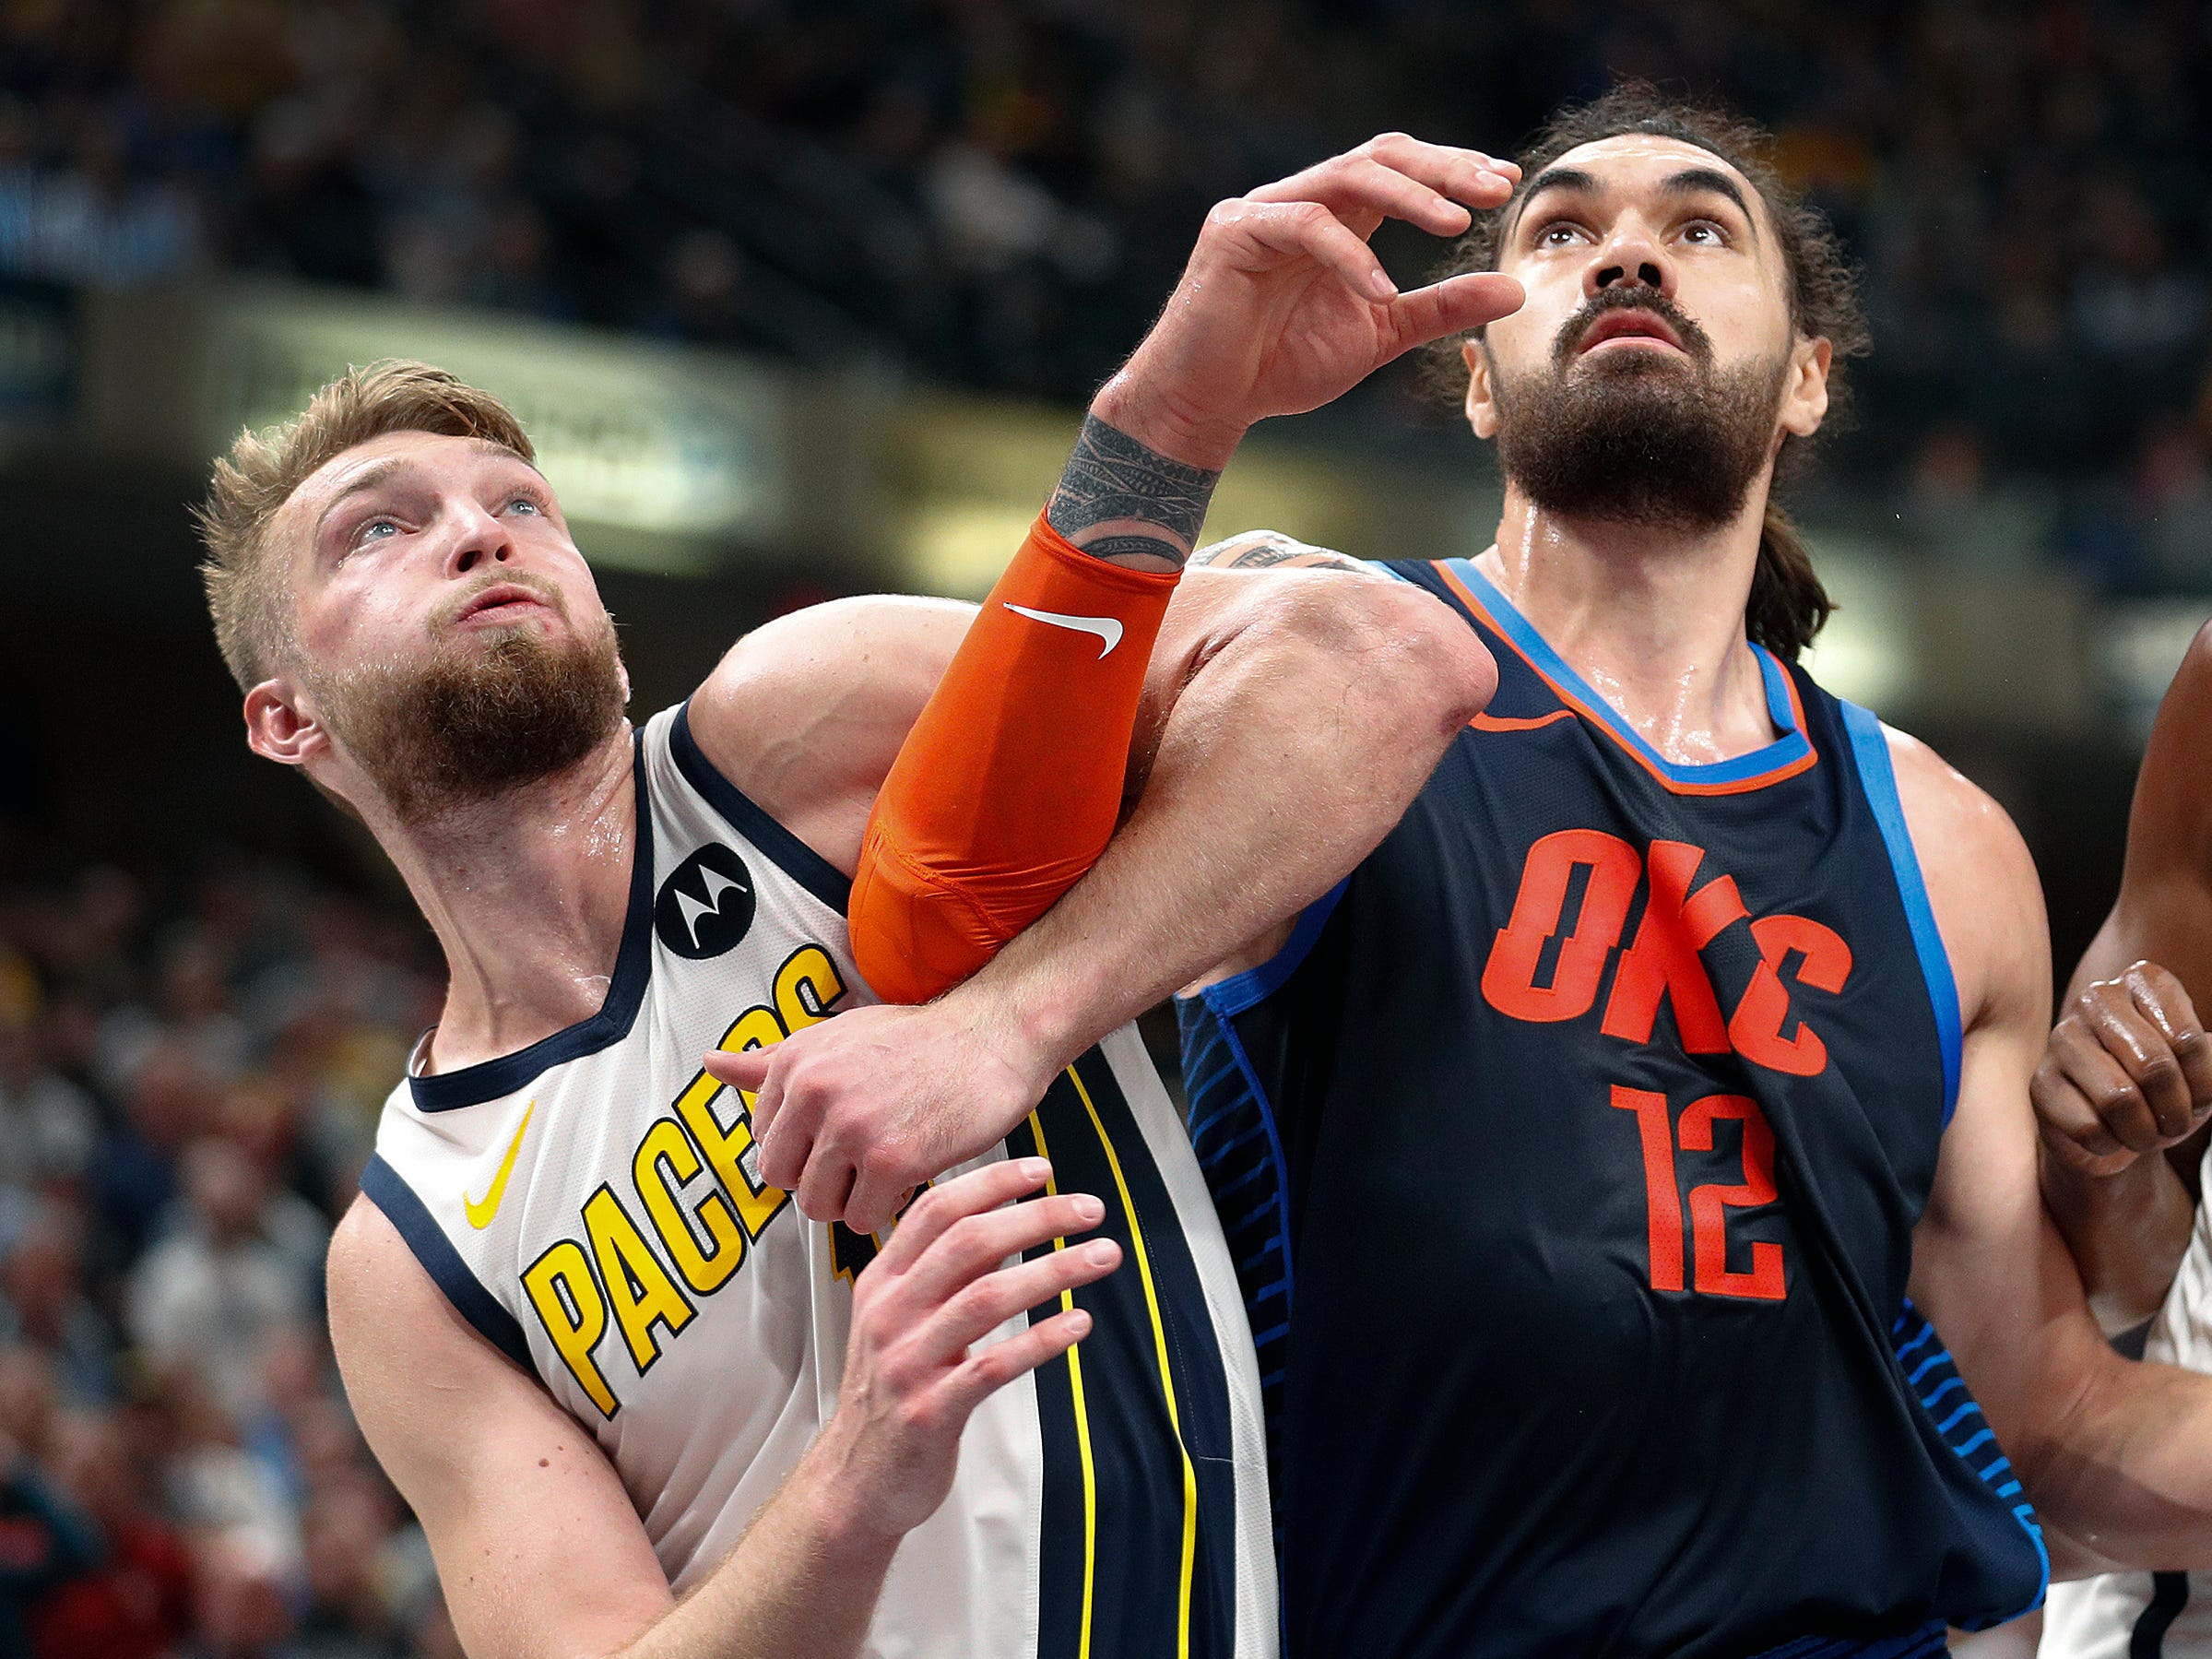 Indiana Pacers forward Domantas Sabonis (11) and Oklahoma City Thunder center Steven Adams (12) lock arms fighting for position in the second half of their game at Bankers Life Fieldhouse on Thursday, Mar. 14, 2019. The Pacers defeated the Thunder 108-106.